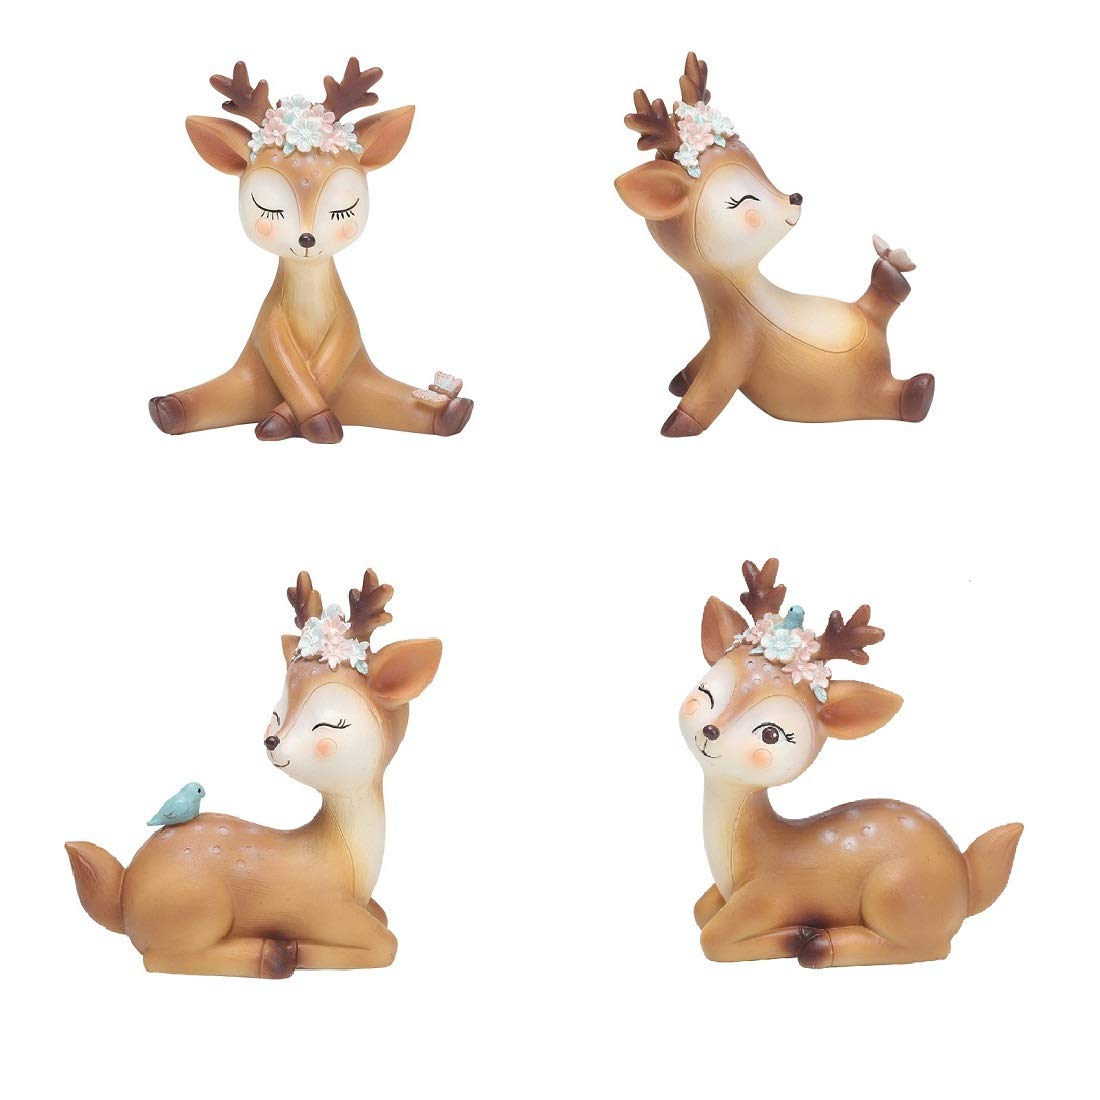 Youfui Cake Topper Party Supplies Cake Decoration for Girls, Birthday Party, Baby Shower & Wedding Home Decor Car Interior Decoration (4pcs Deers Eden) by Youfui (Image #1)